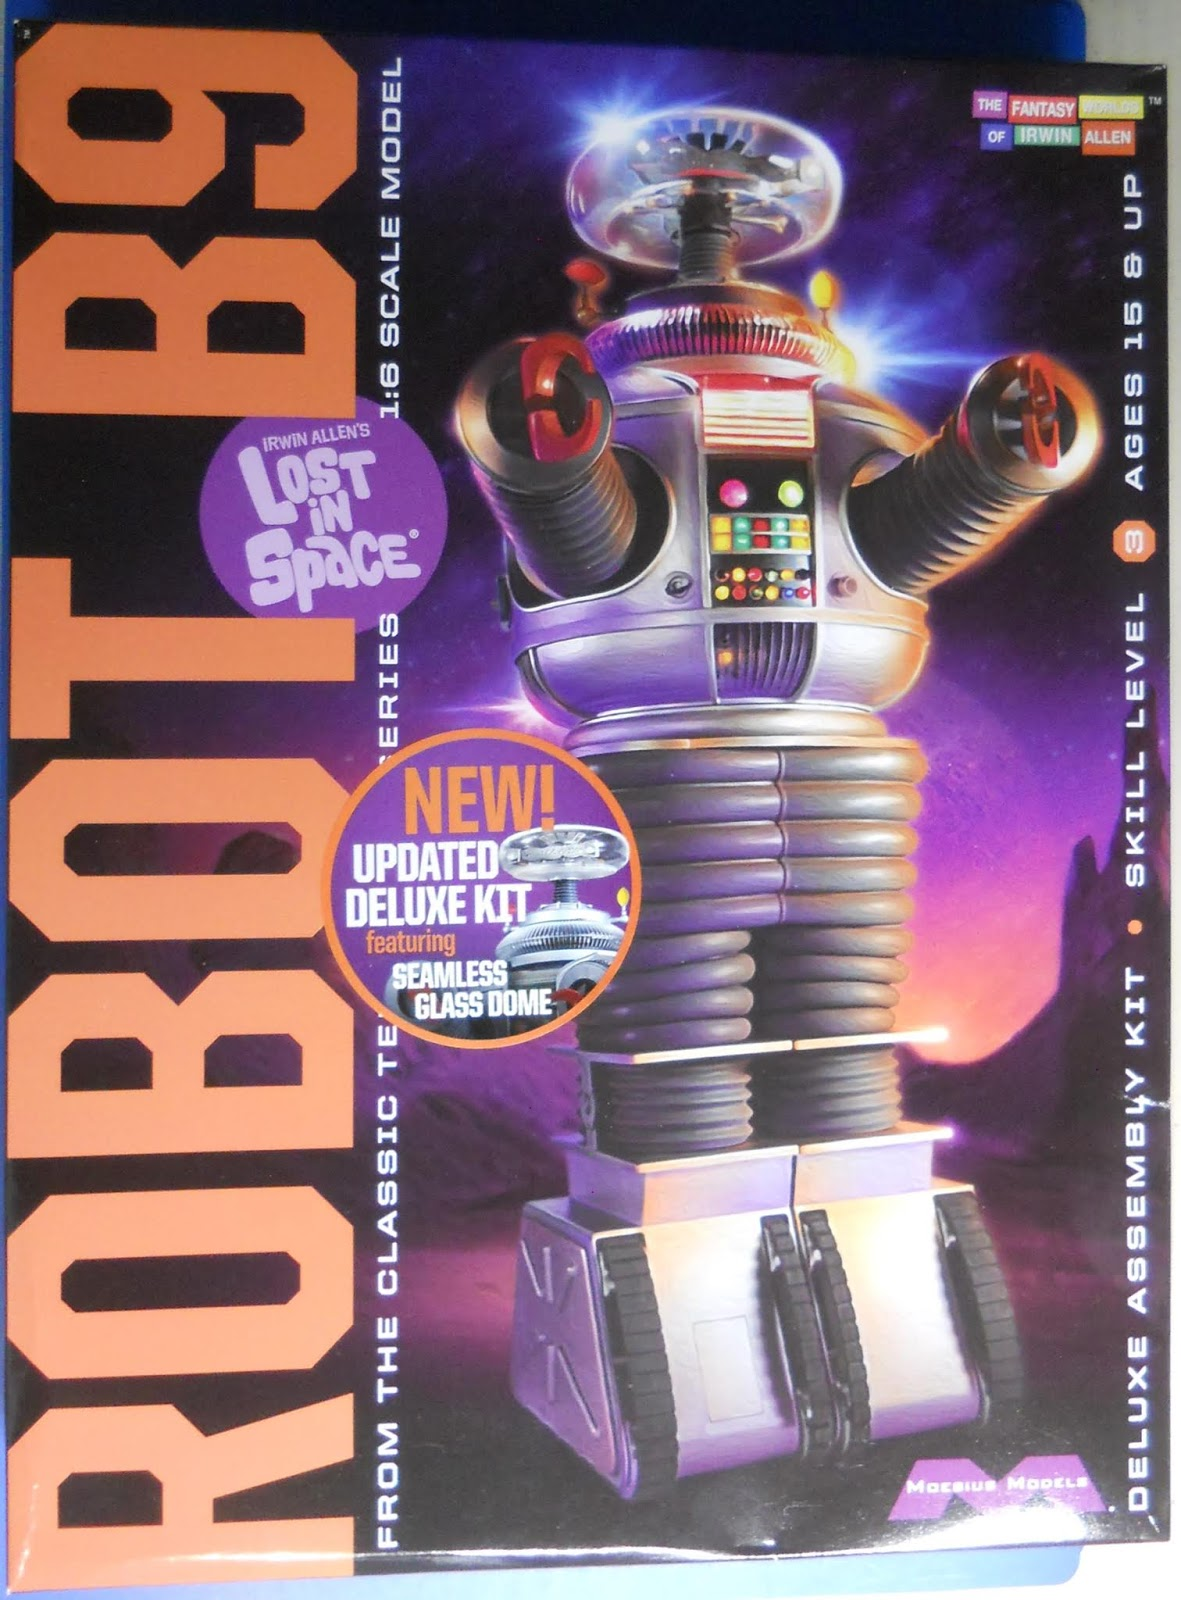 Scale Model Kit Review Blog (SMKR): Moebius Models ROBOT B9 Updated